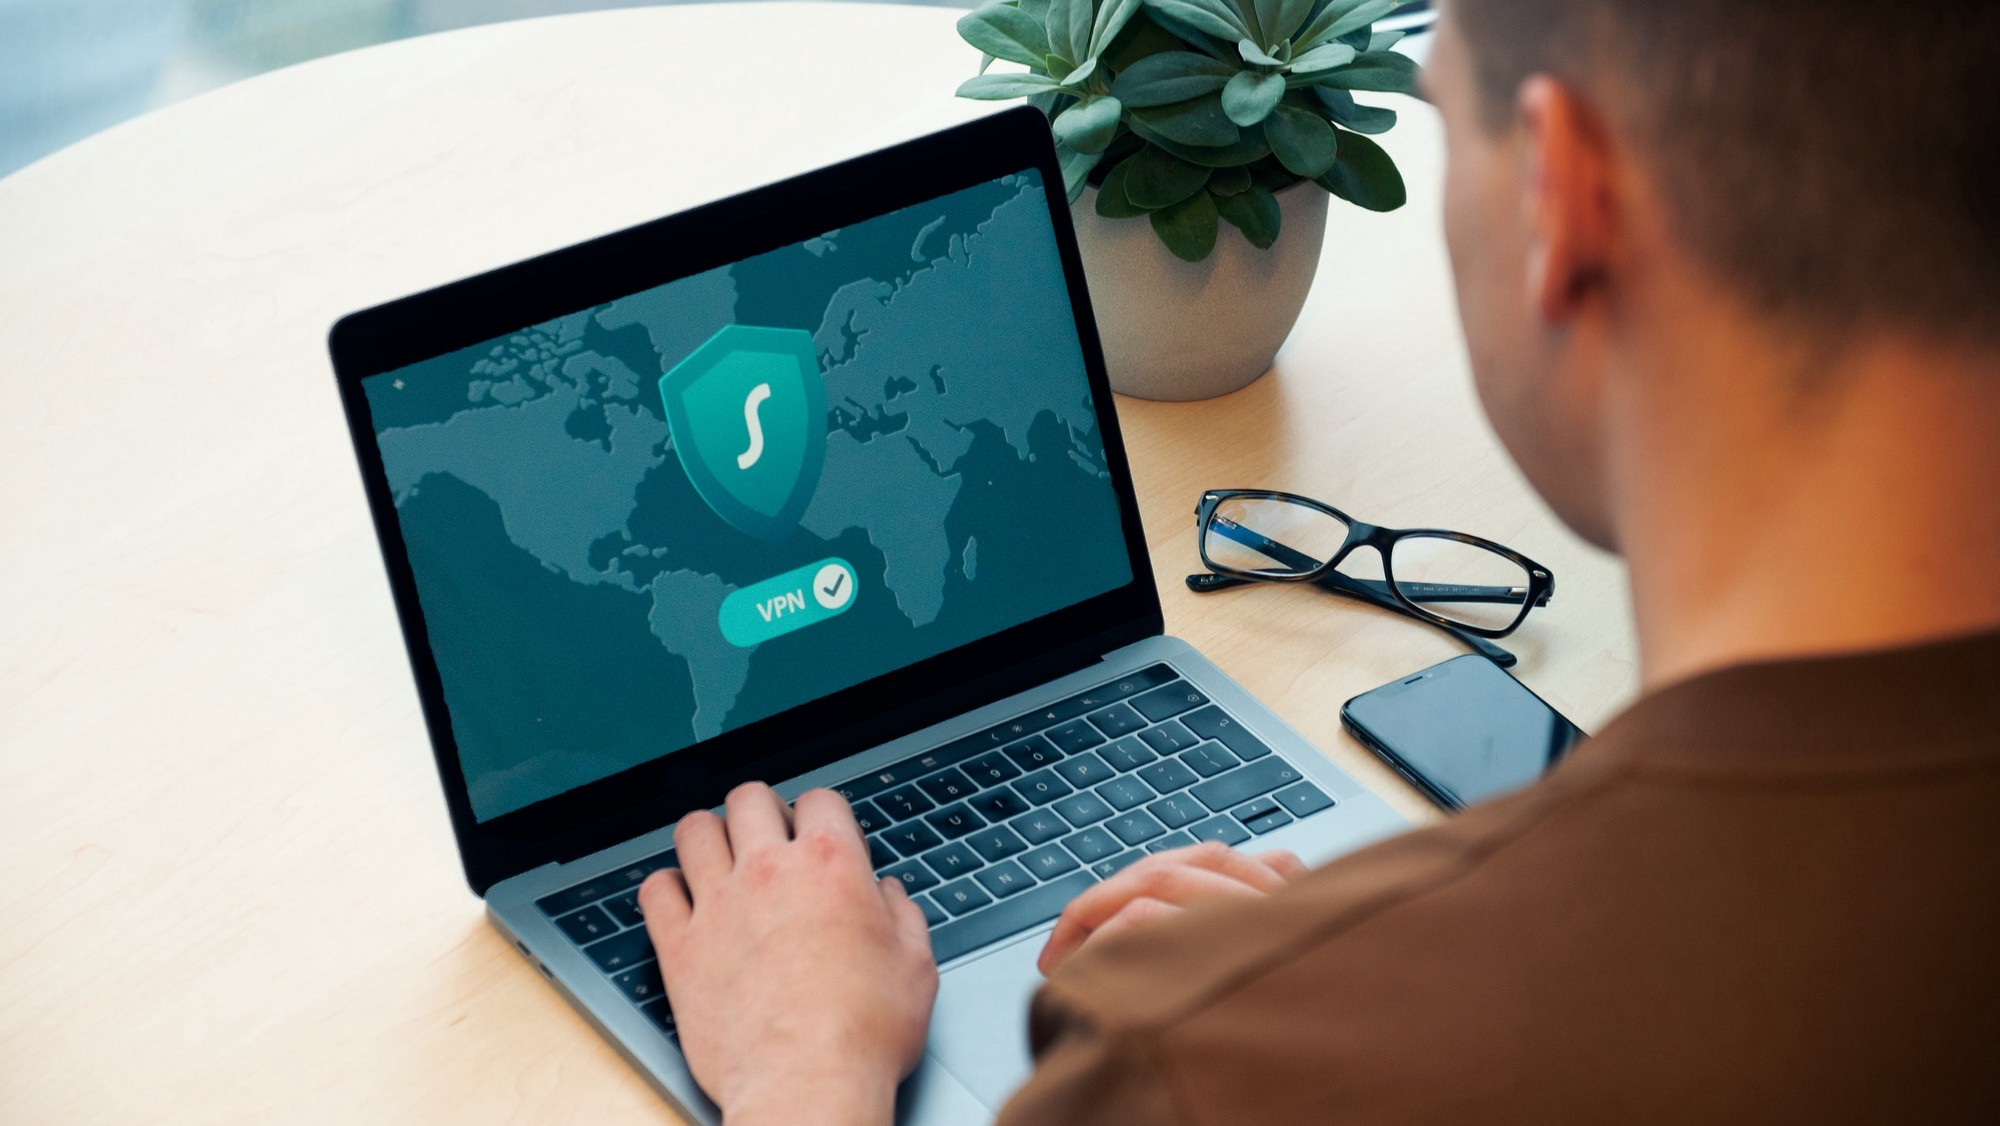 Man looking at laptop with security symbol on the screen.